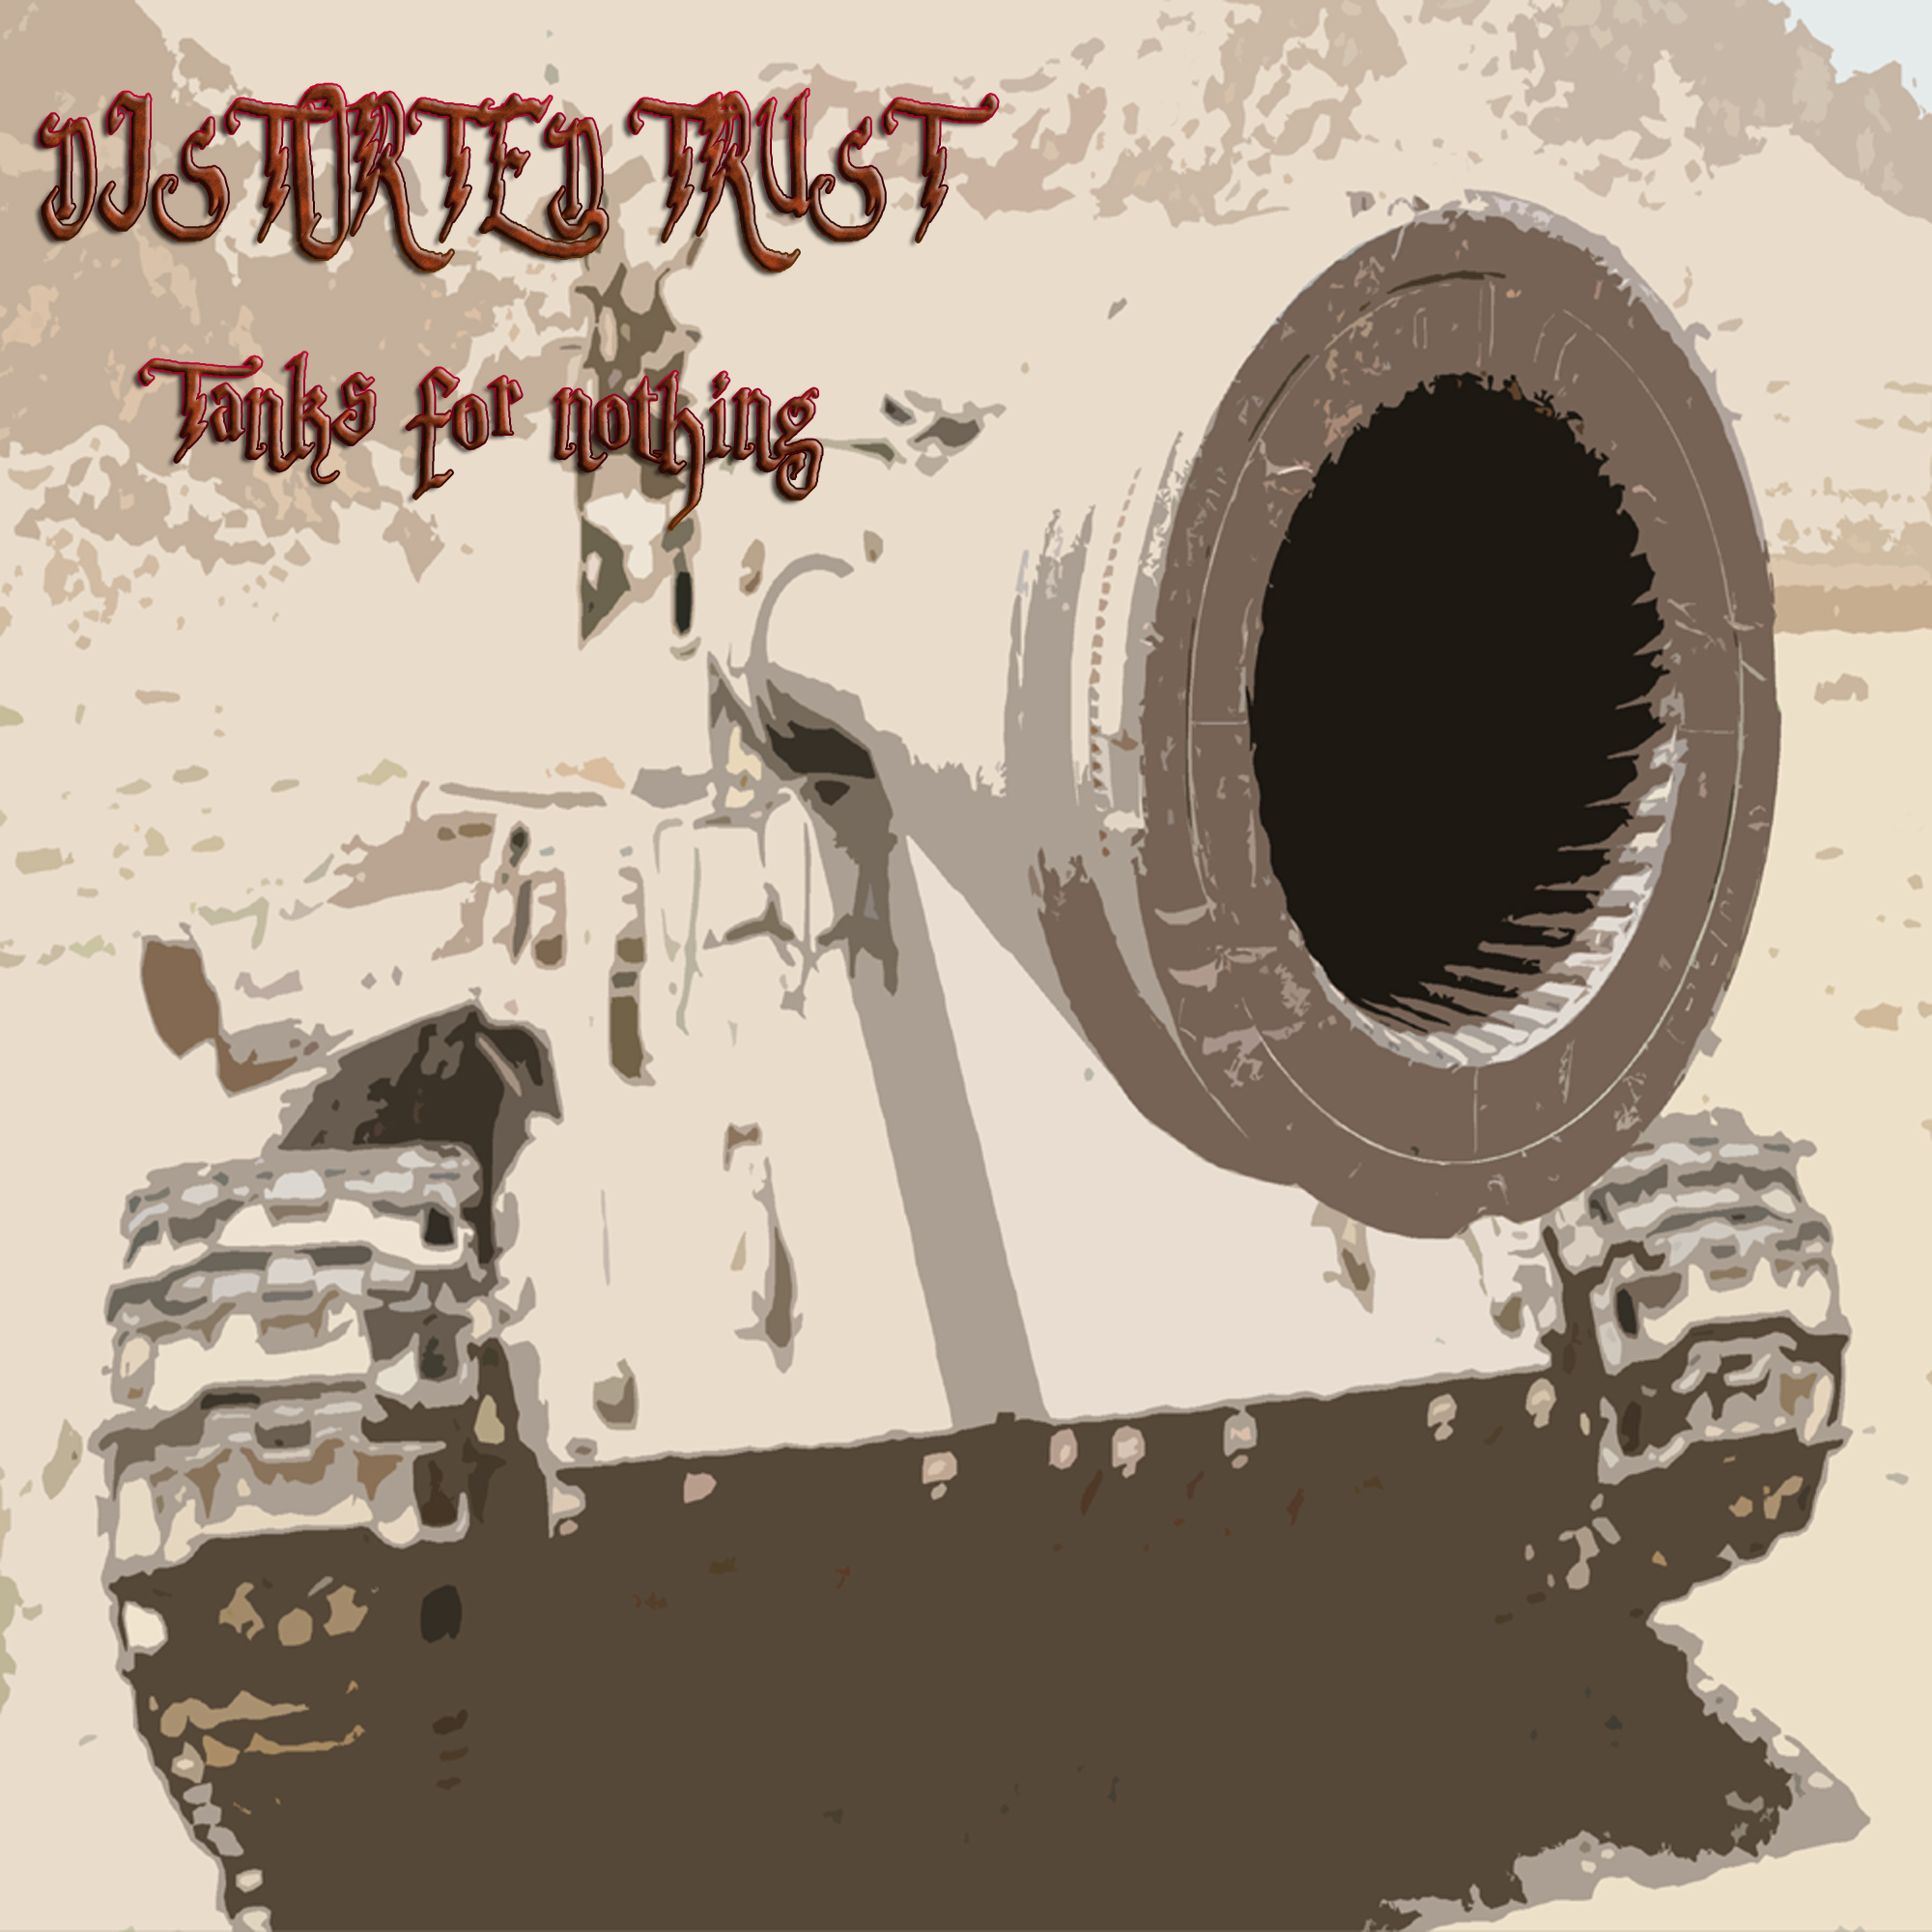 tanks for nothing cover